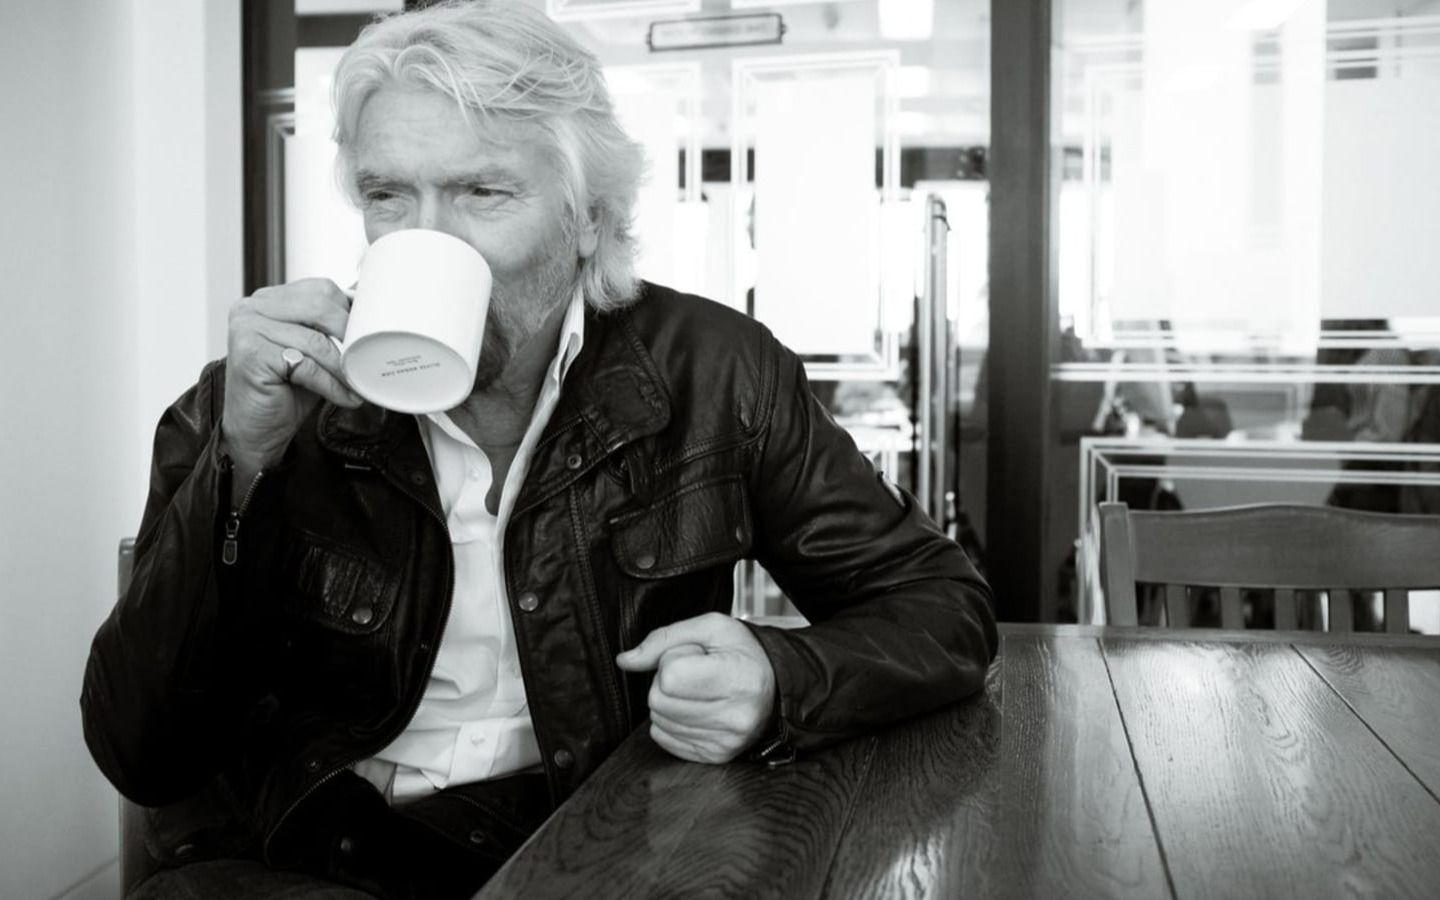 Black and white photo of Richard Branson in the office drinking tea